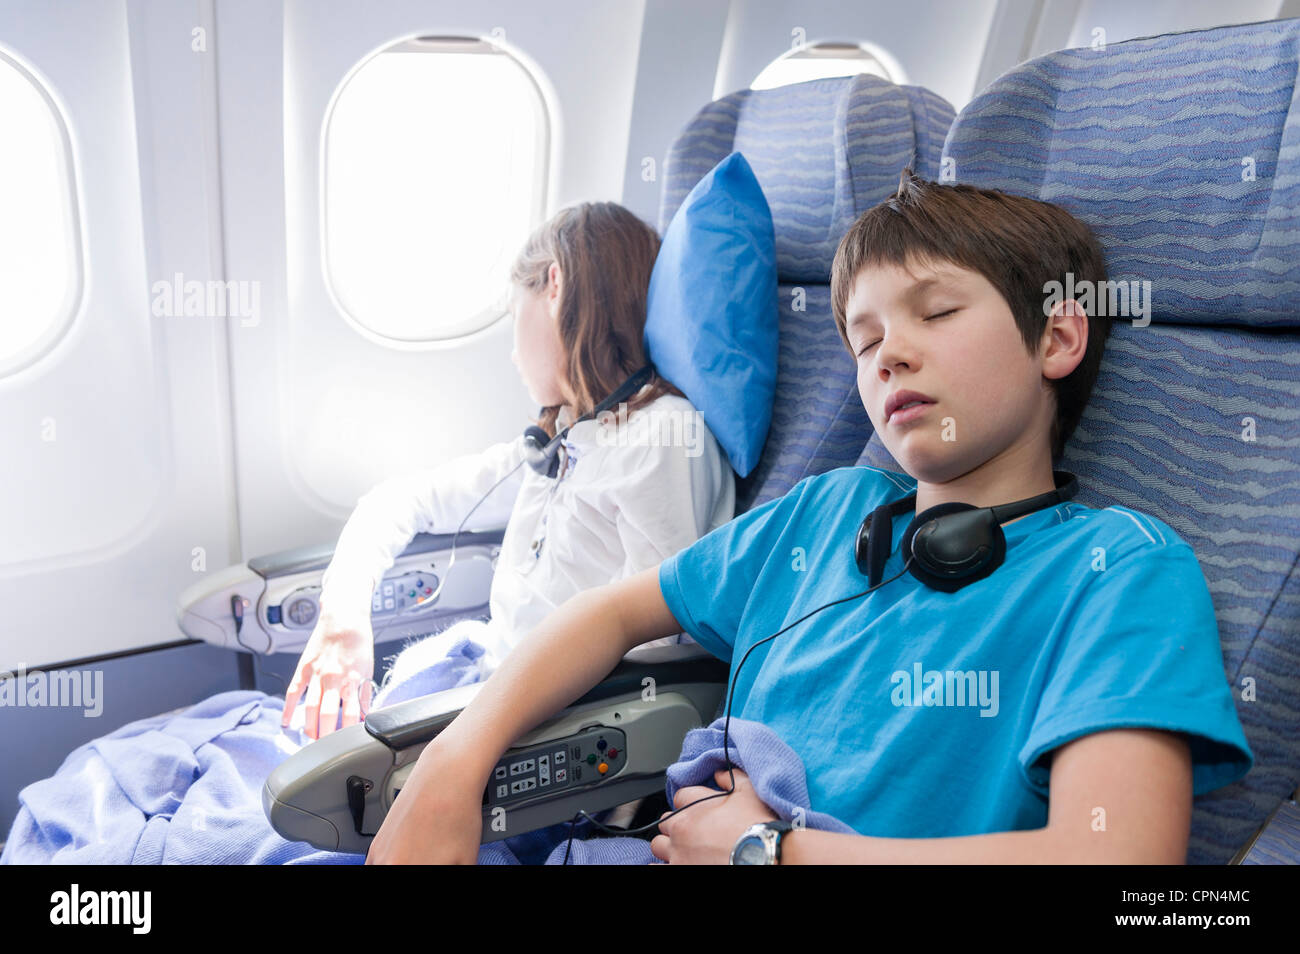 Children Sleeping On Airplane Stock Photo Royalty Free